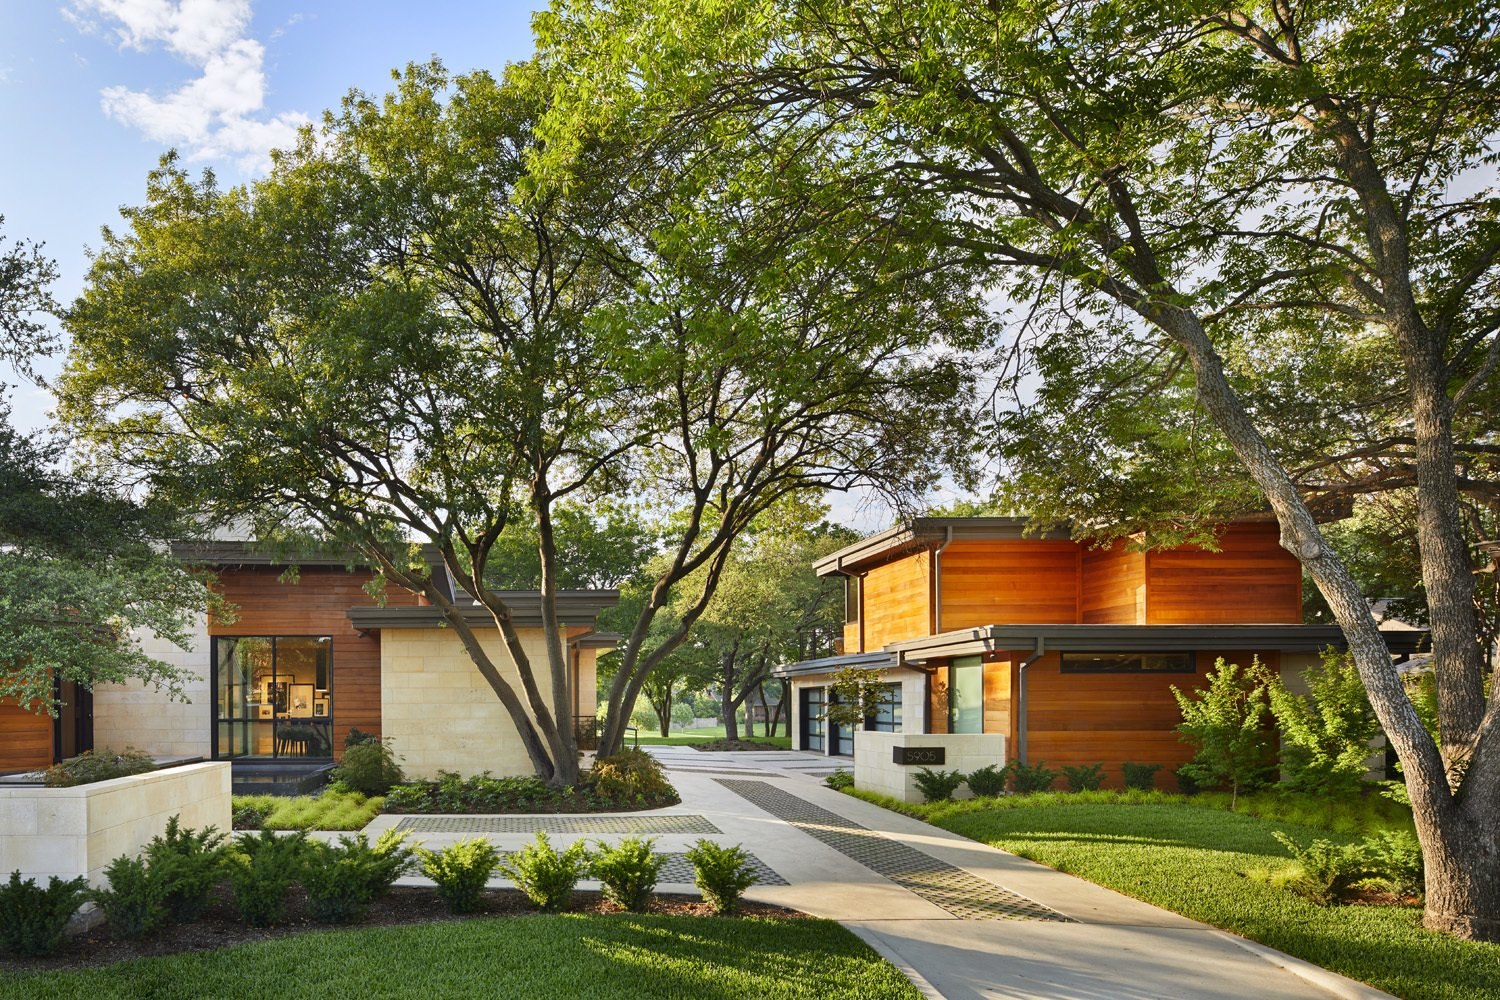 Exterior, Metal Roof Material, House Building Type, Wood Siding Material, and Flat RoofLine Front view of home and guest house/garage.  Bent Tree Residence